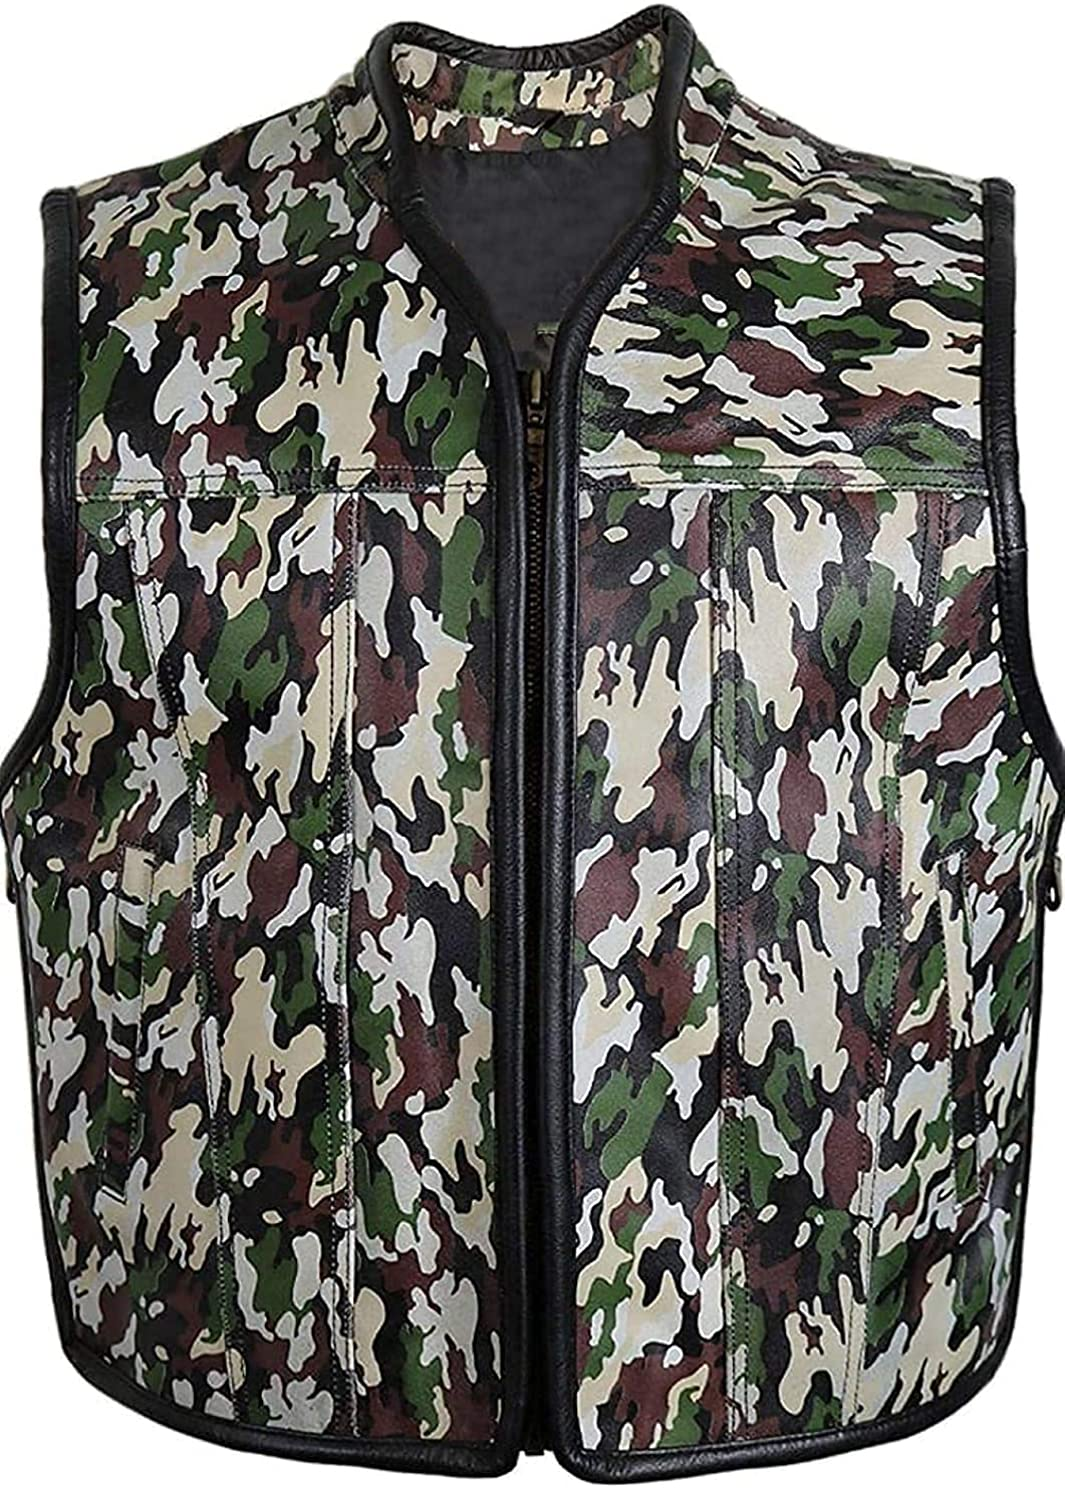 NM-Fashions Men's Military Style Side Laced Motorcycle Camouflage Leather Vest